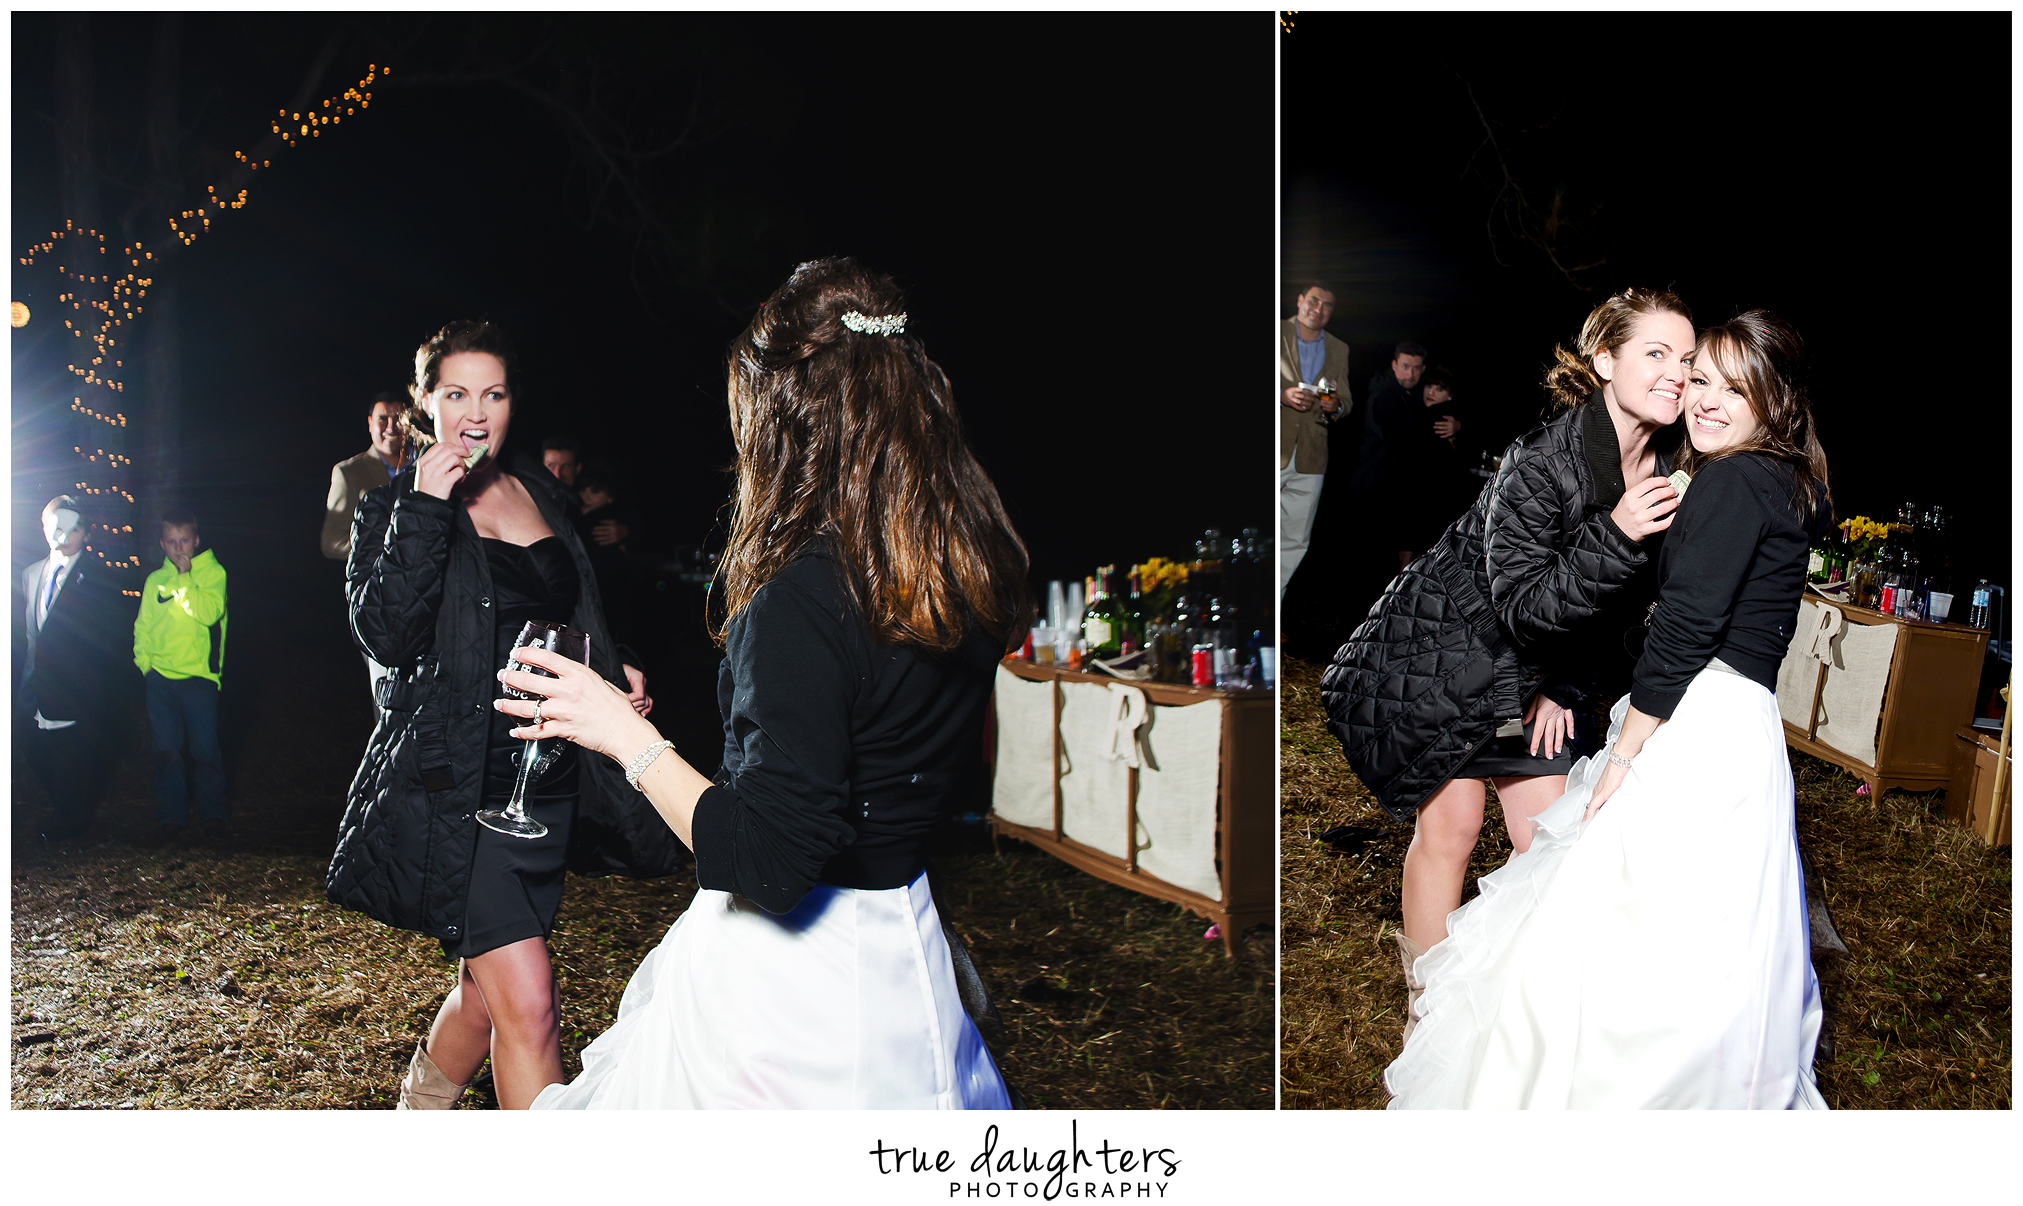 True_Daughters_Photography_Campitelli_Wedding-45.png